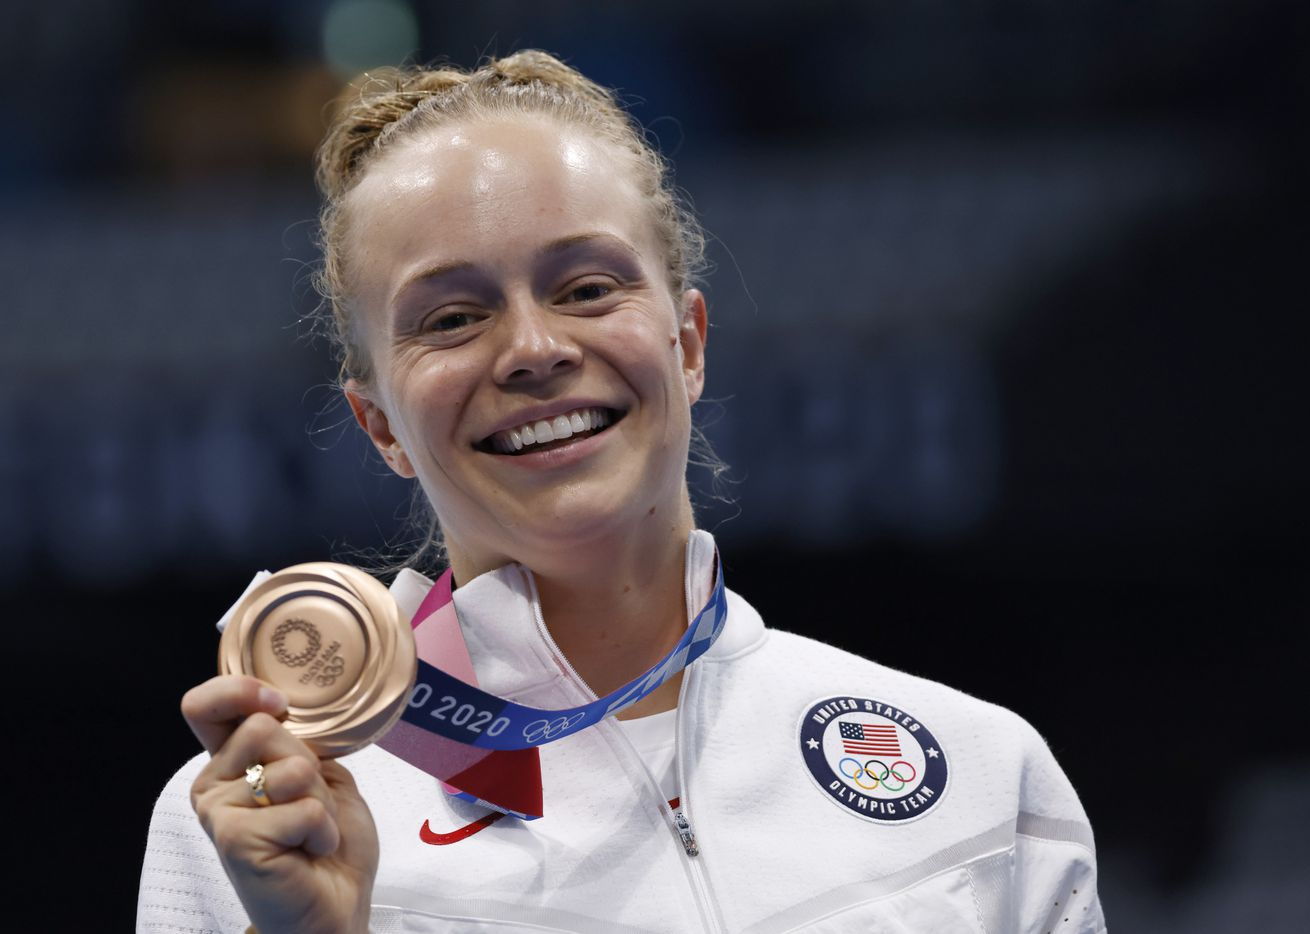 USA's Krysta Palmer poses for photographers with her bronze medal after competing in the women's 3 meter springboard final during the postponed 2020 Tokyo Olympics at Tokyo Aquatics Centre, on Sunday, August 1, 2021, in Tokyo, Japan. Palmer finished 3rd with a total score of 343.75 to earn a bronze medal. (Vernon Bryant/The Dallas Morning News)